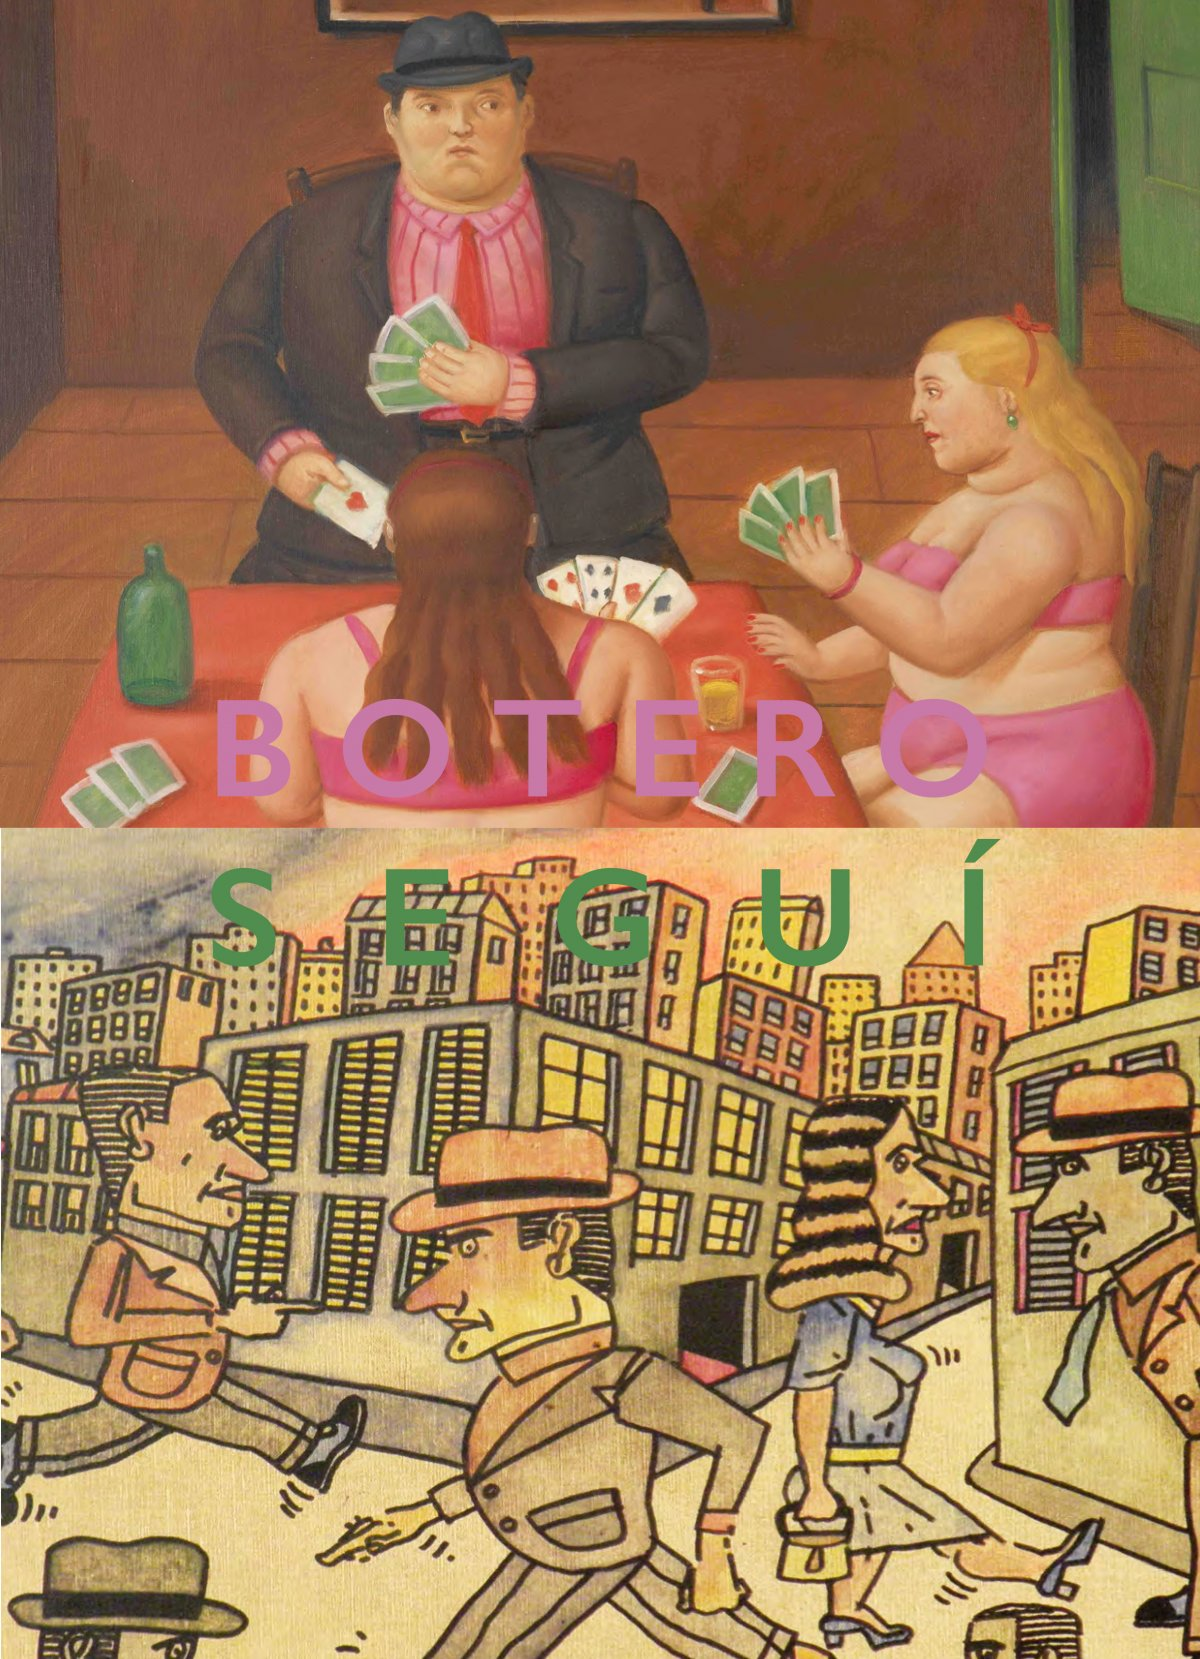 Fernando Botero and Antonio Seguí at Opera Gallery, New York